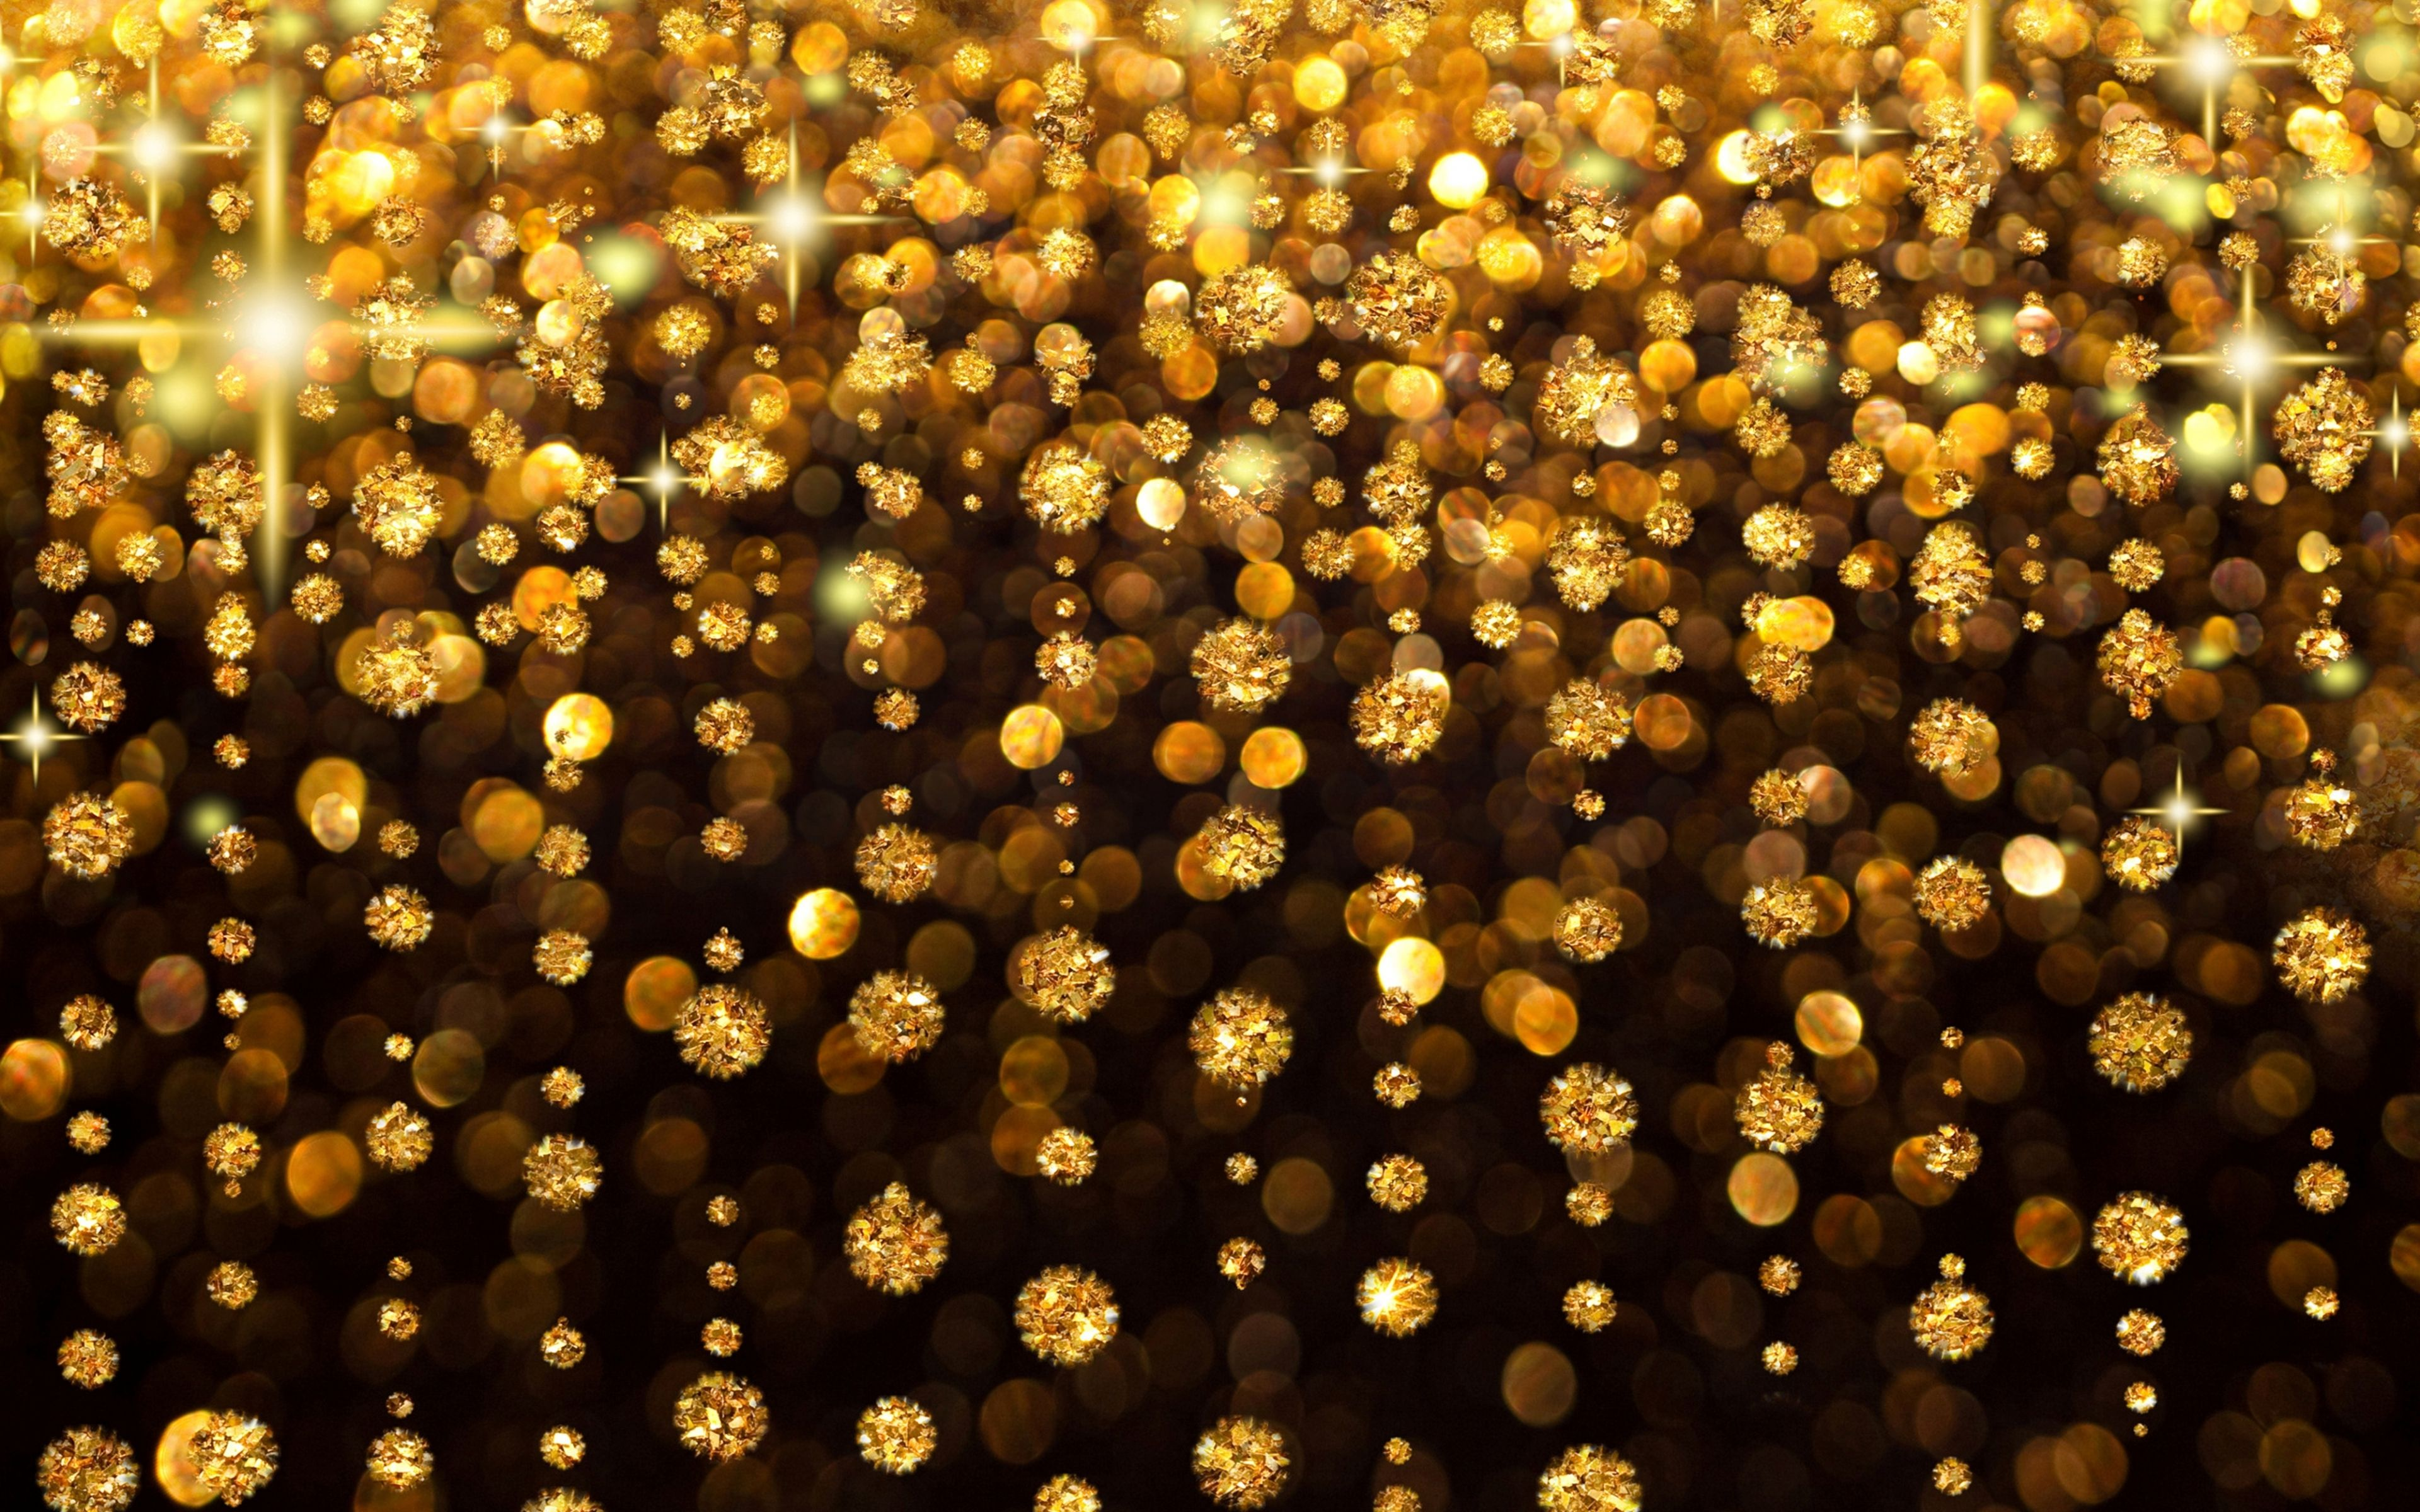 Black And Gold Glitter Wallpapers Top Free Black And Gold Glitter Backgrounds Wallpaperaccess